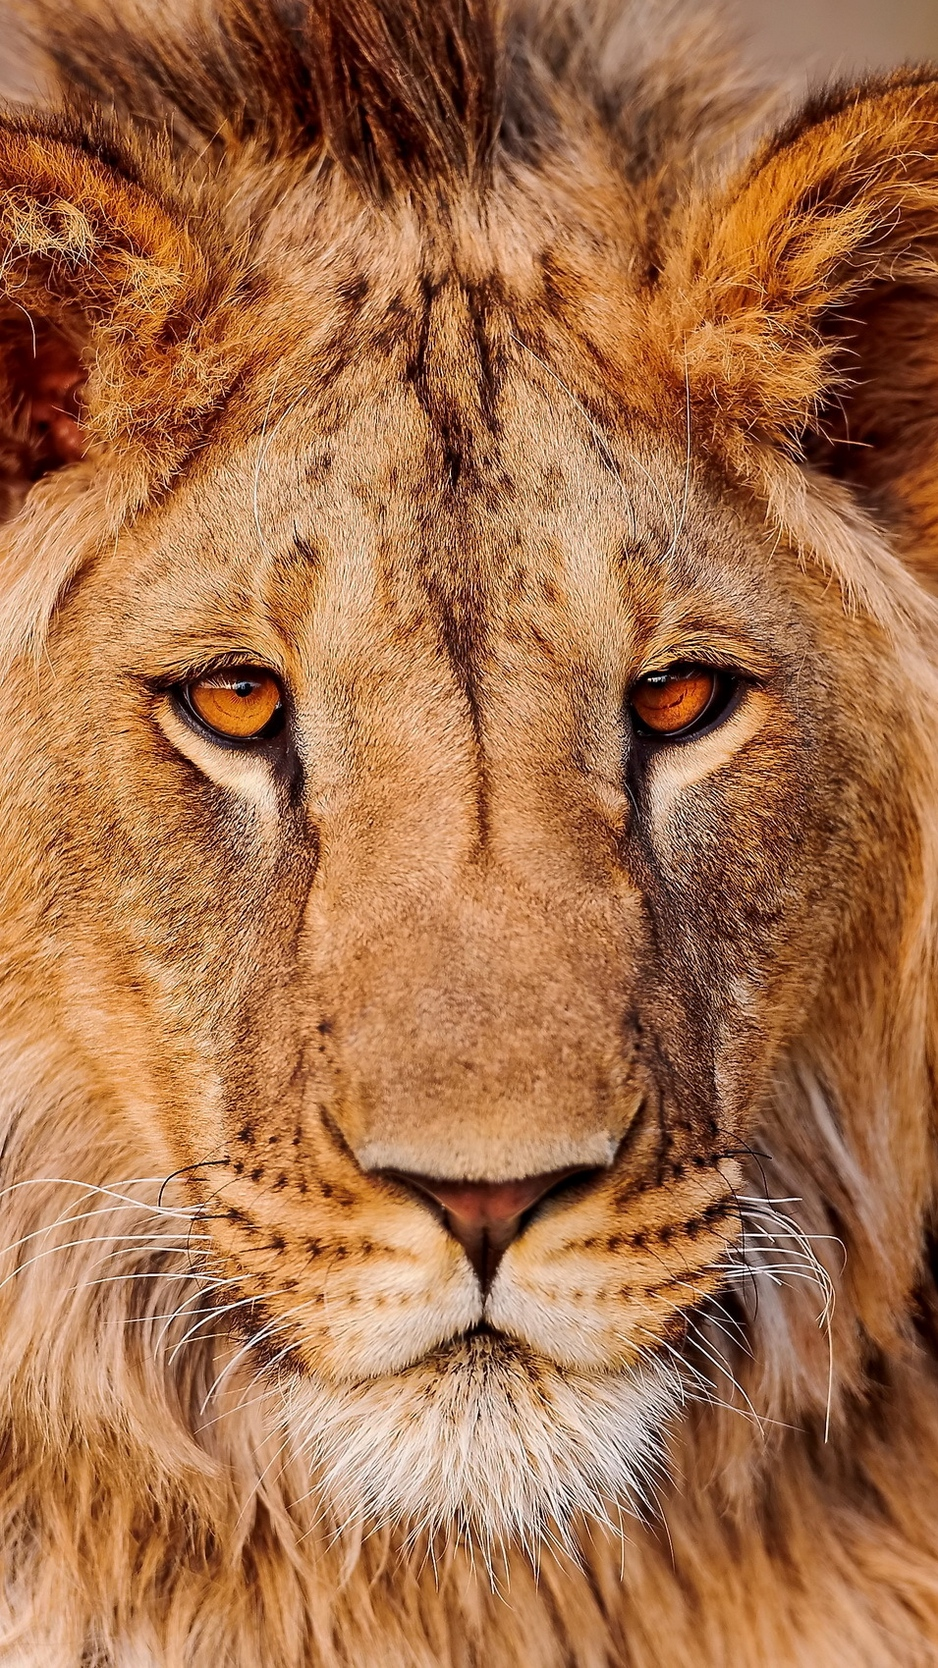 Lion Hd Face Iphone Wallpapers Wallpaper Cave